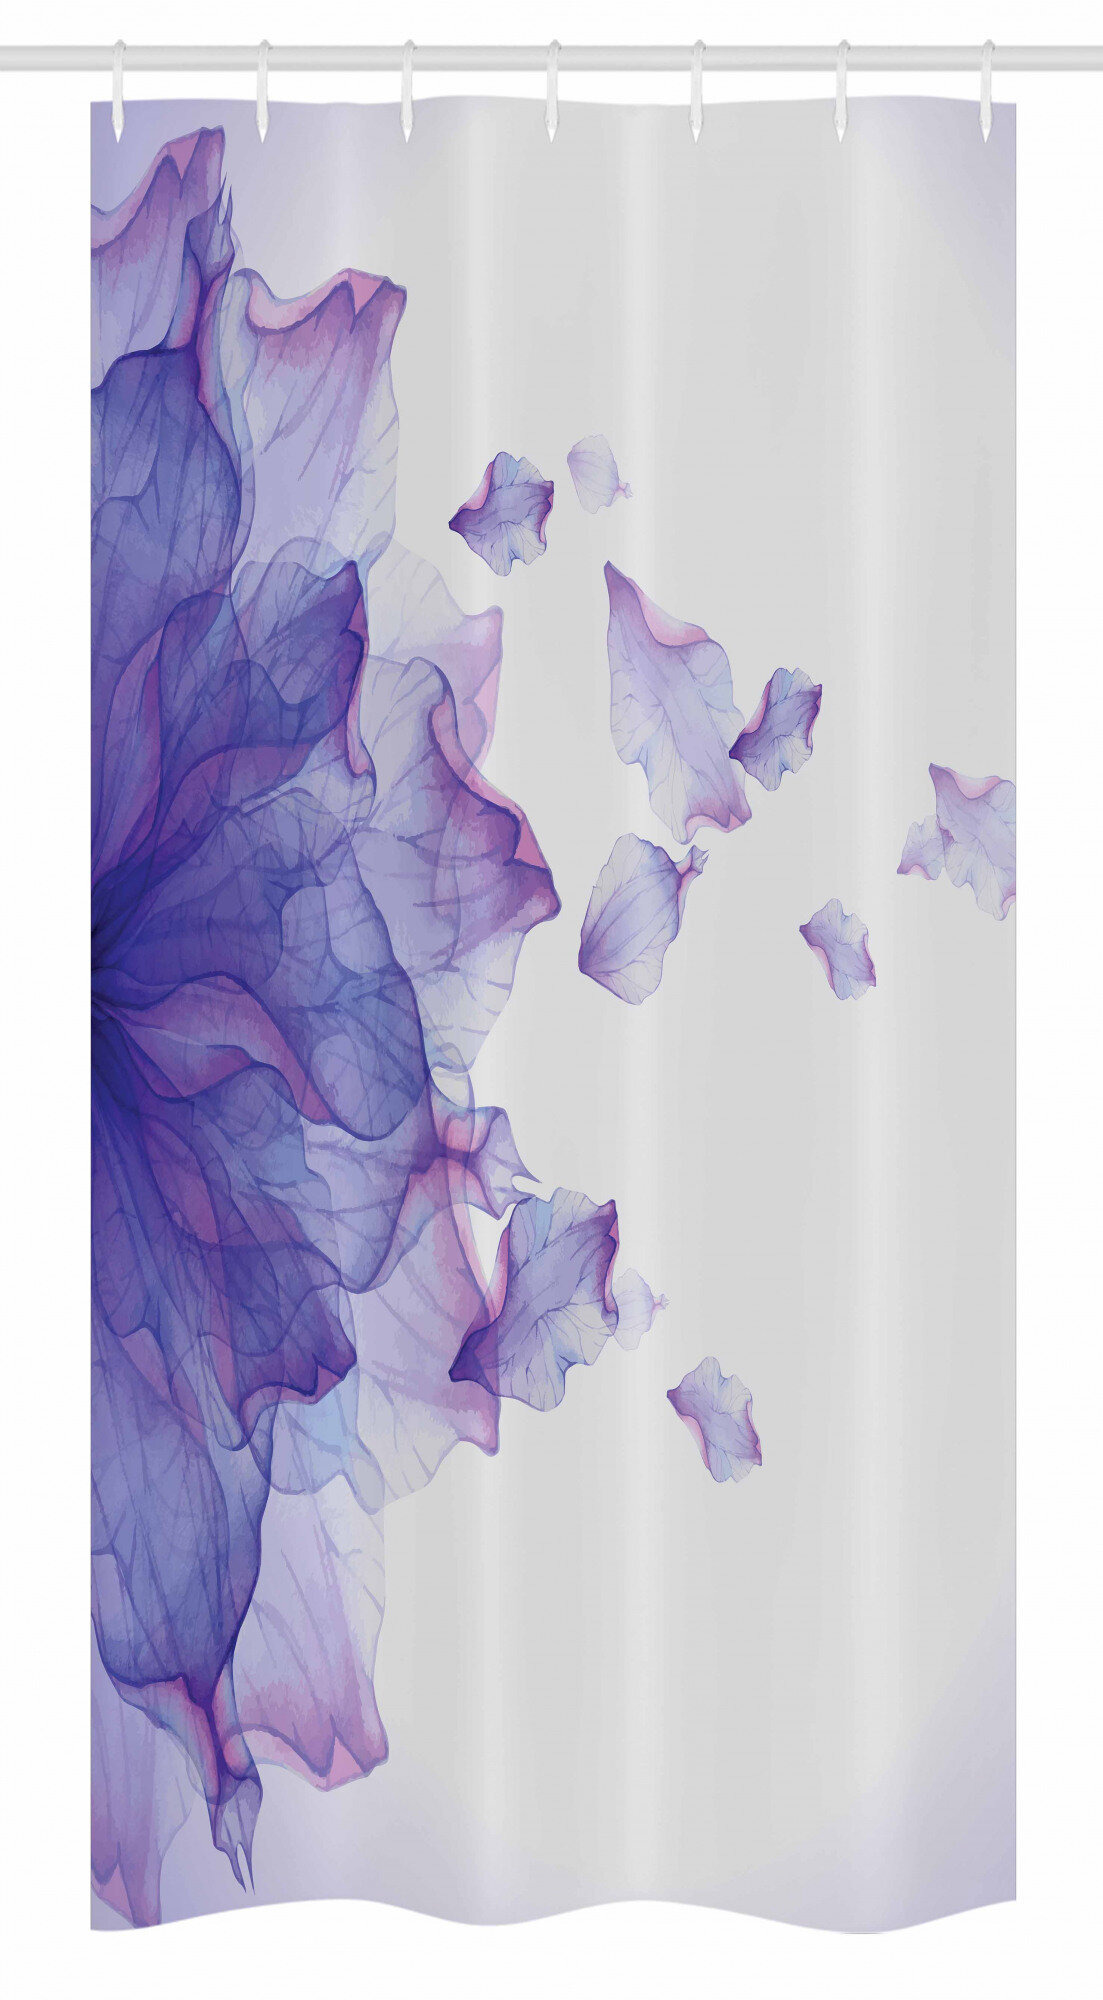 Lilac Bathroom Decor Fresh Ambesonne Flower Stall Shower Curtain Abstract themed Modern Futuristic Image with Water Like Coloured Artwork Print Fabric Bathroom Decor Set with